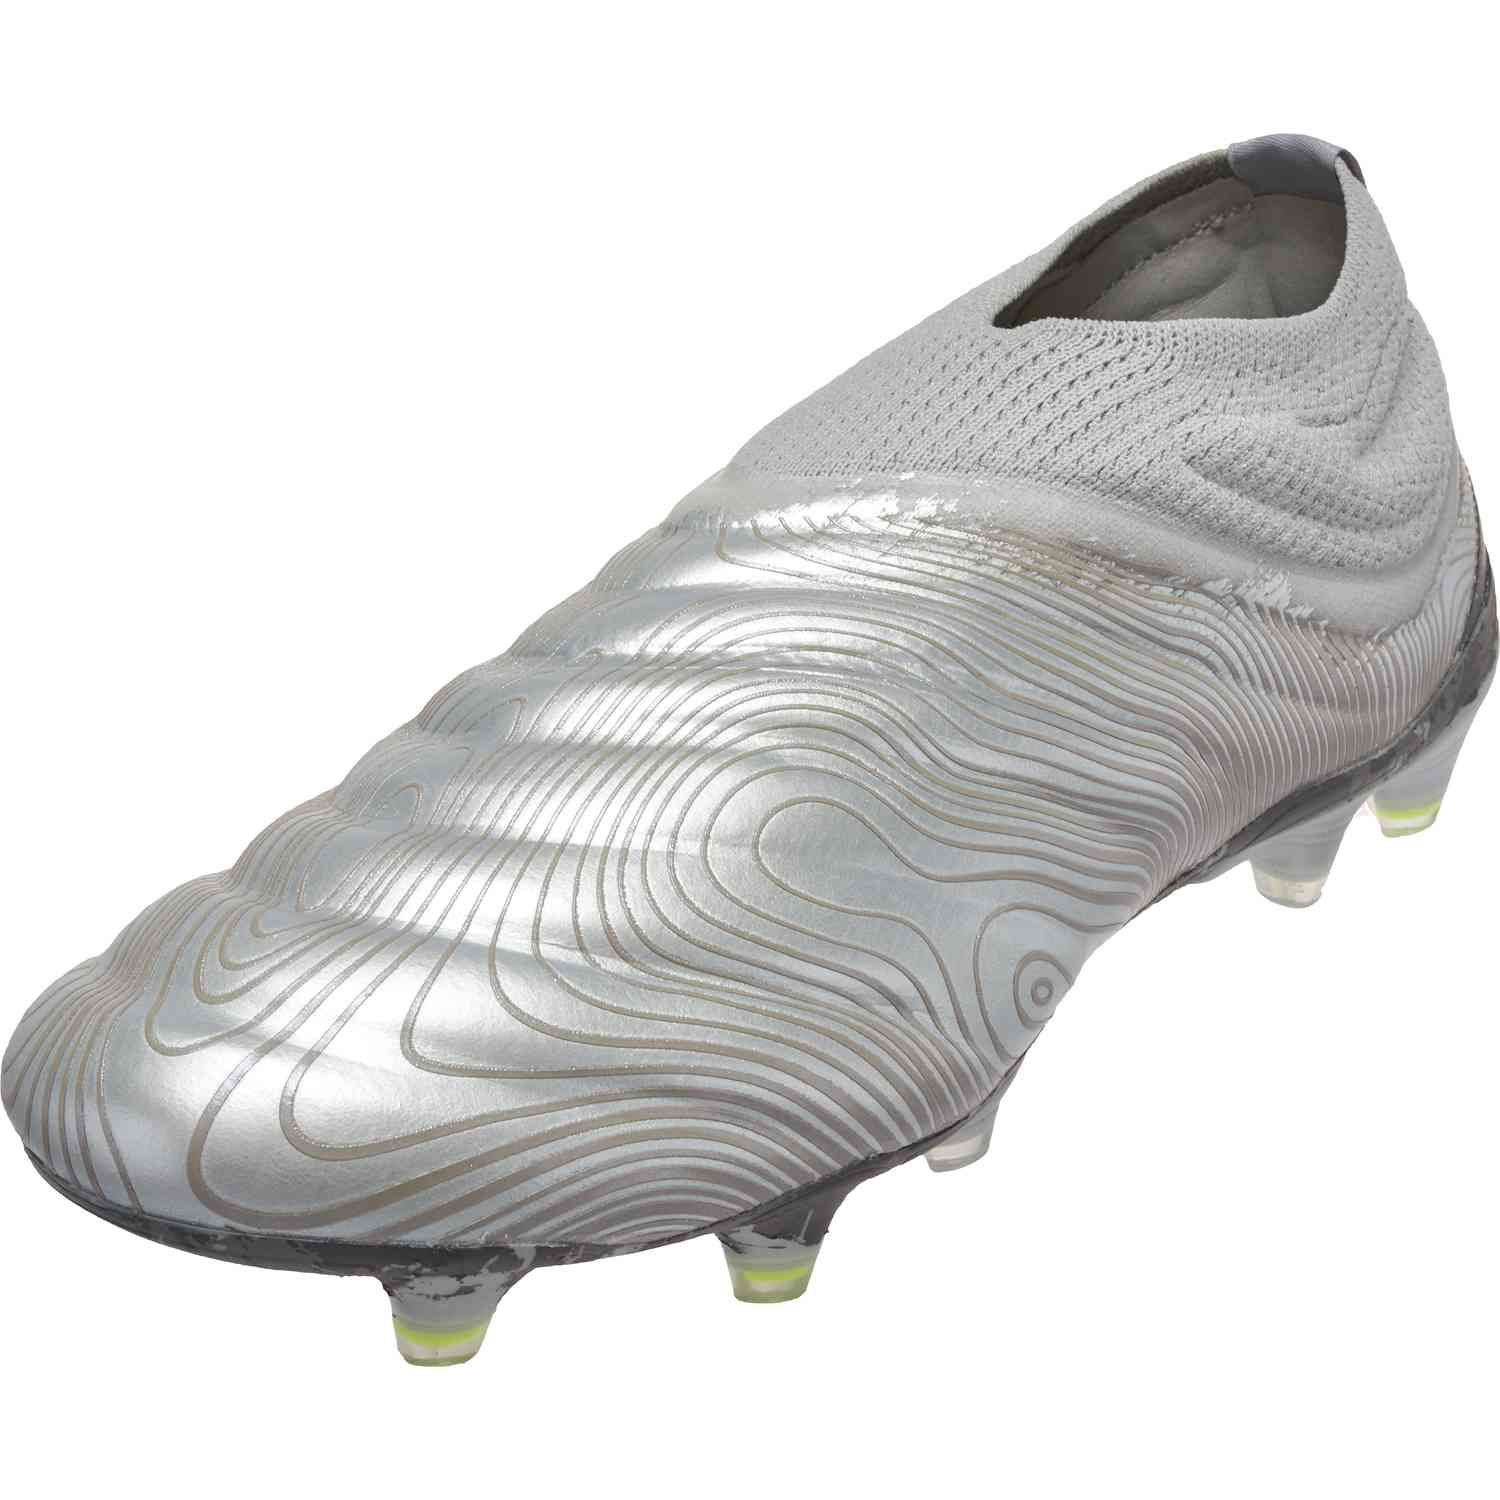 Adidas Copa 20 Fg Encryption Pack Soccerpro In 2020 Football Boots Adidas Soccer Cleats